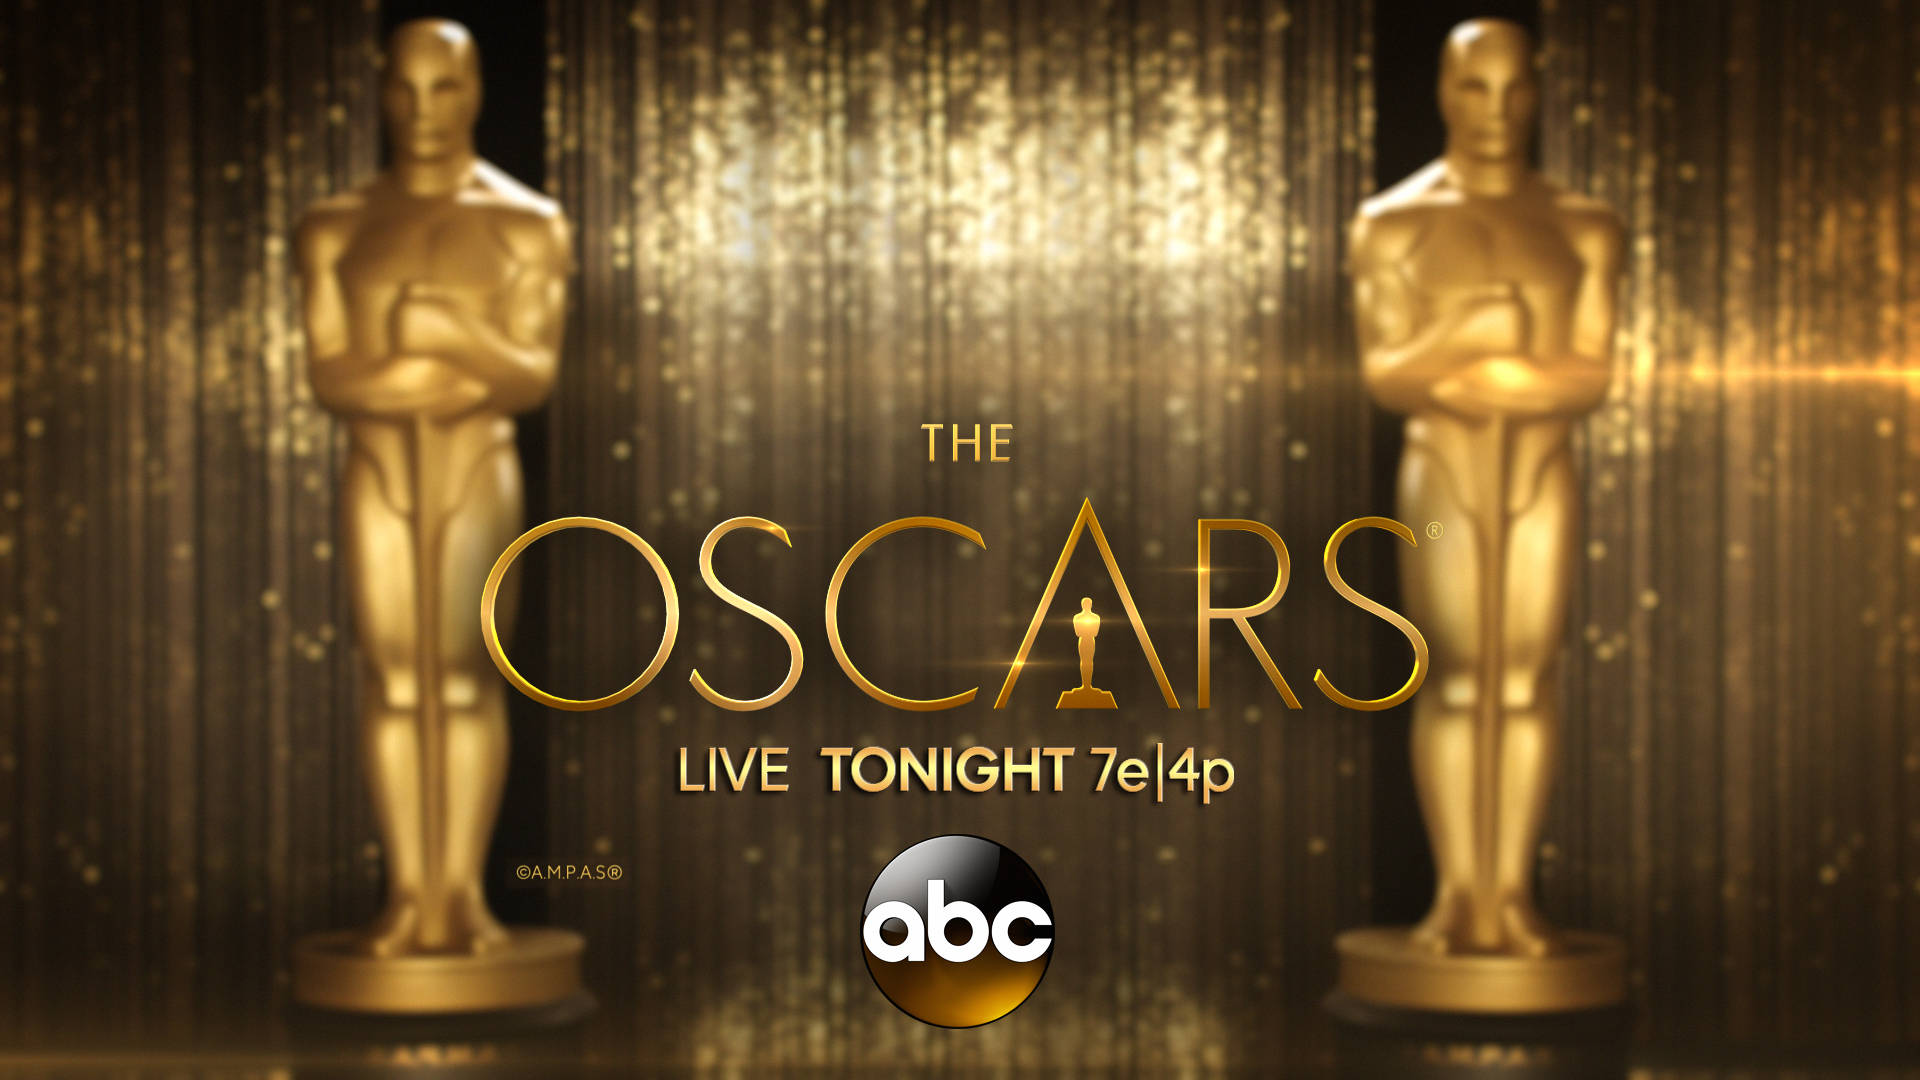 OSCARS LIVE-tonight_1456711221311.jpg